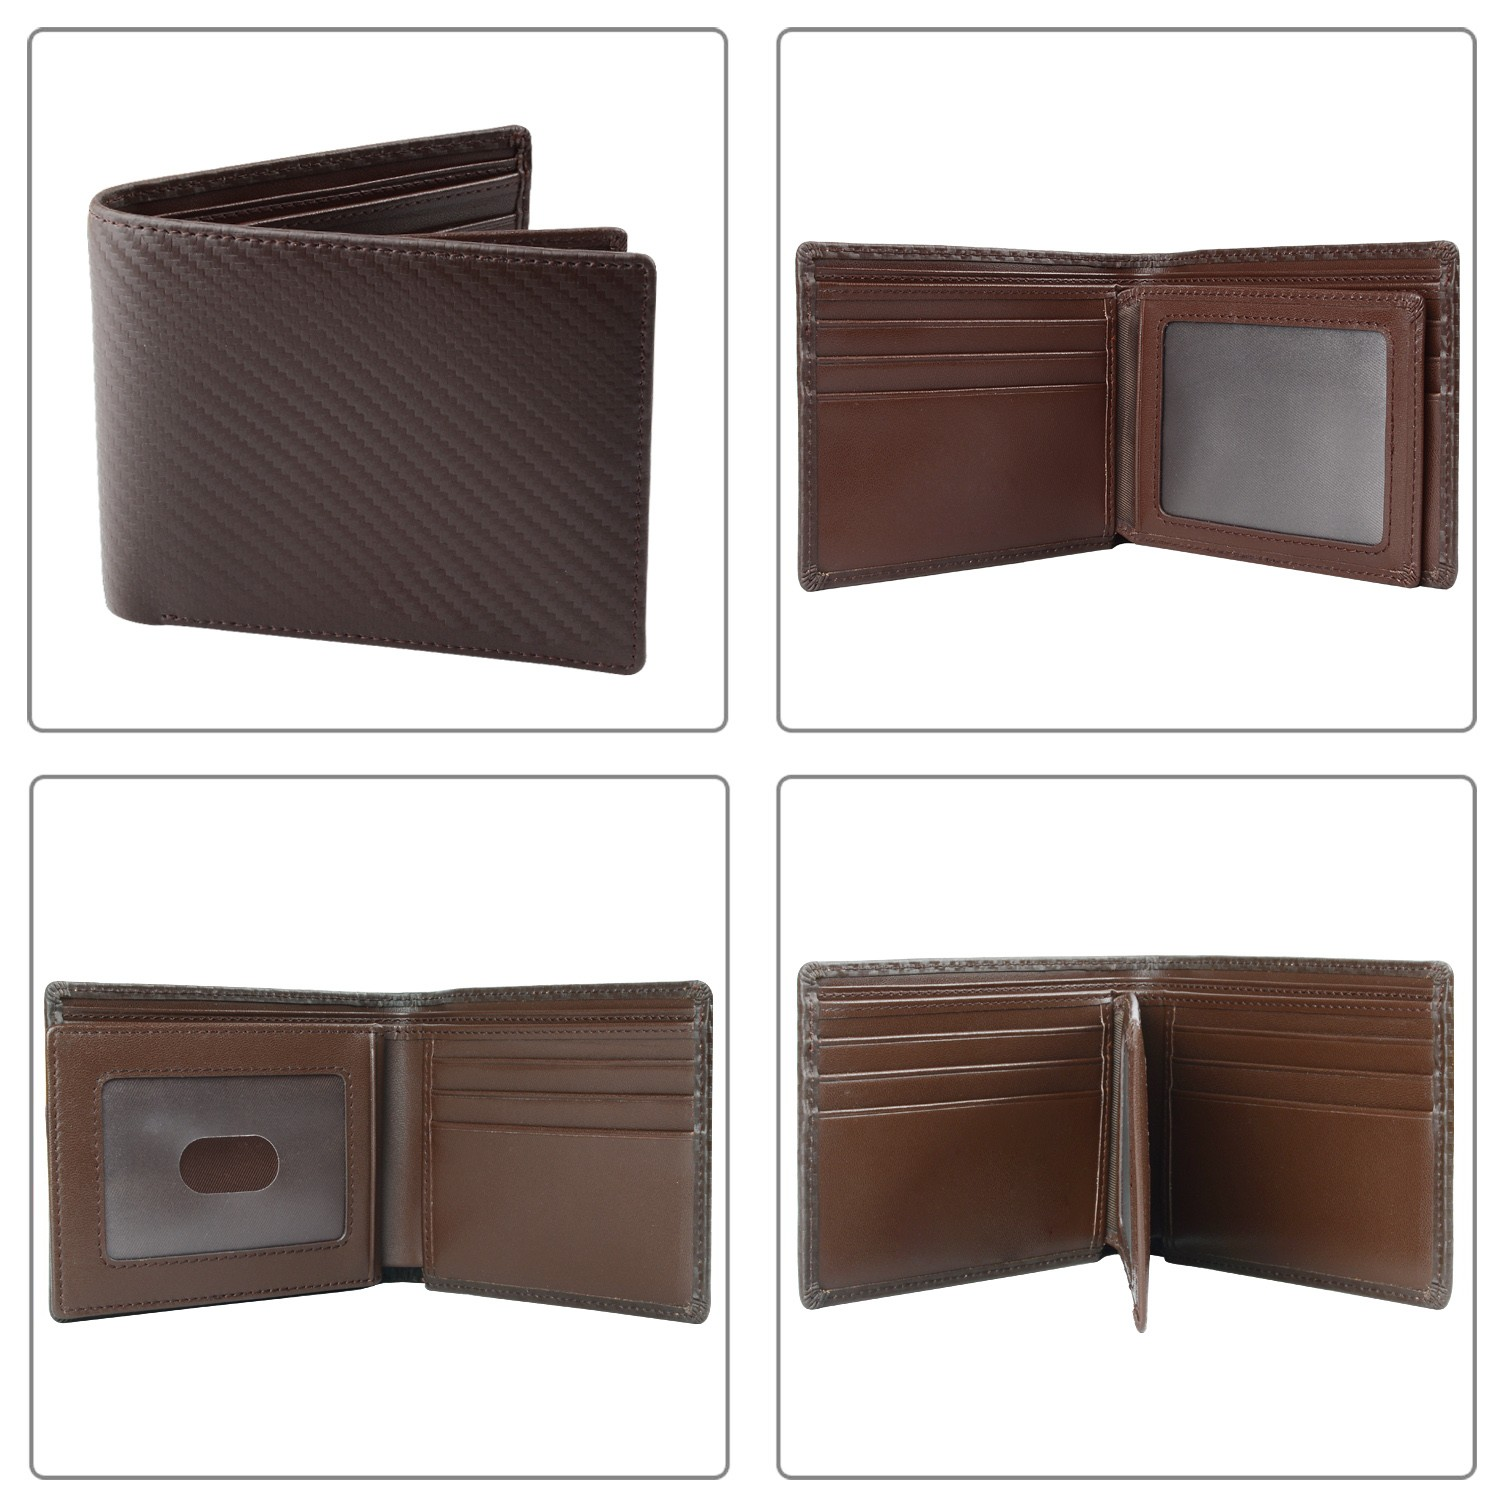 AIVI multi-function custom leather wallets for sale for men-4